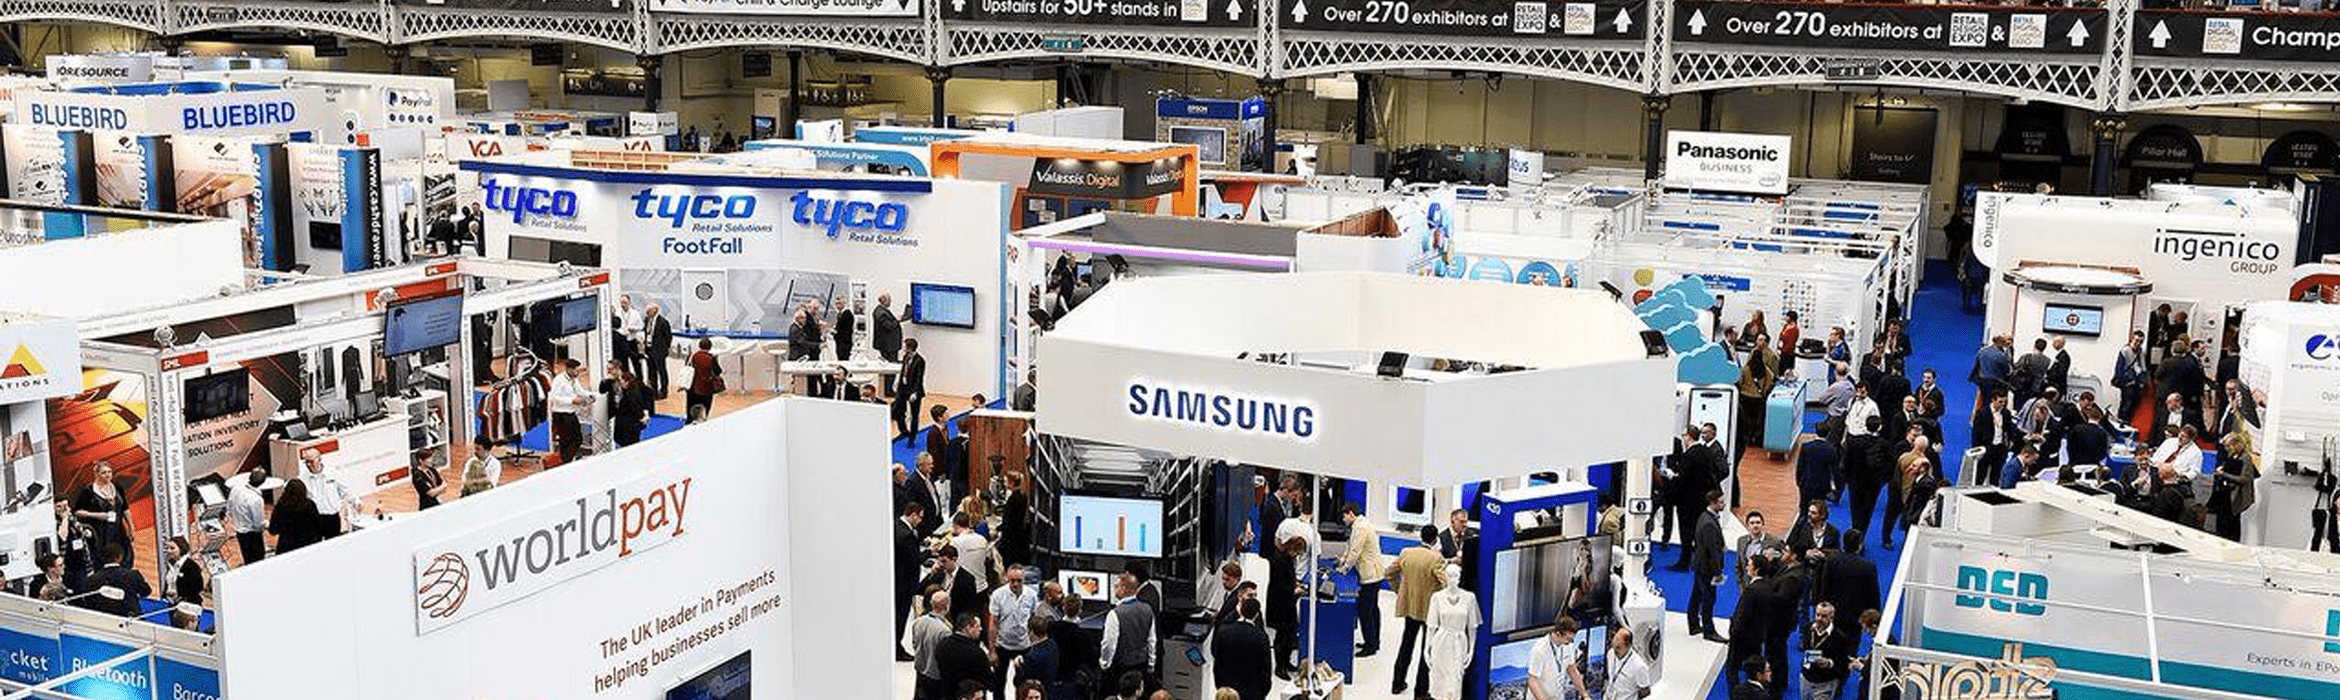 Brother's Guide To Retail Events: Retail Business Technology Expo